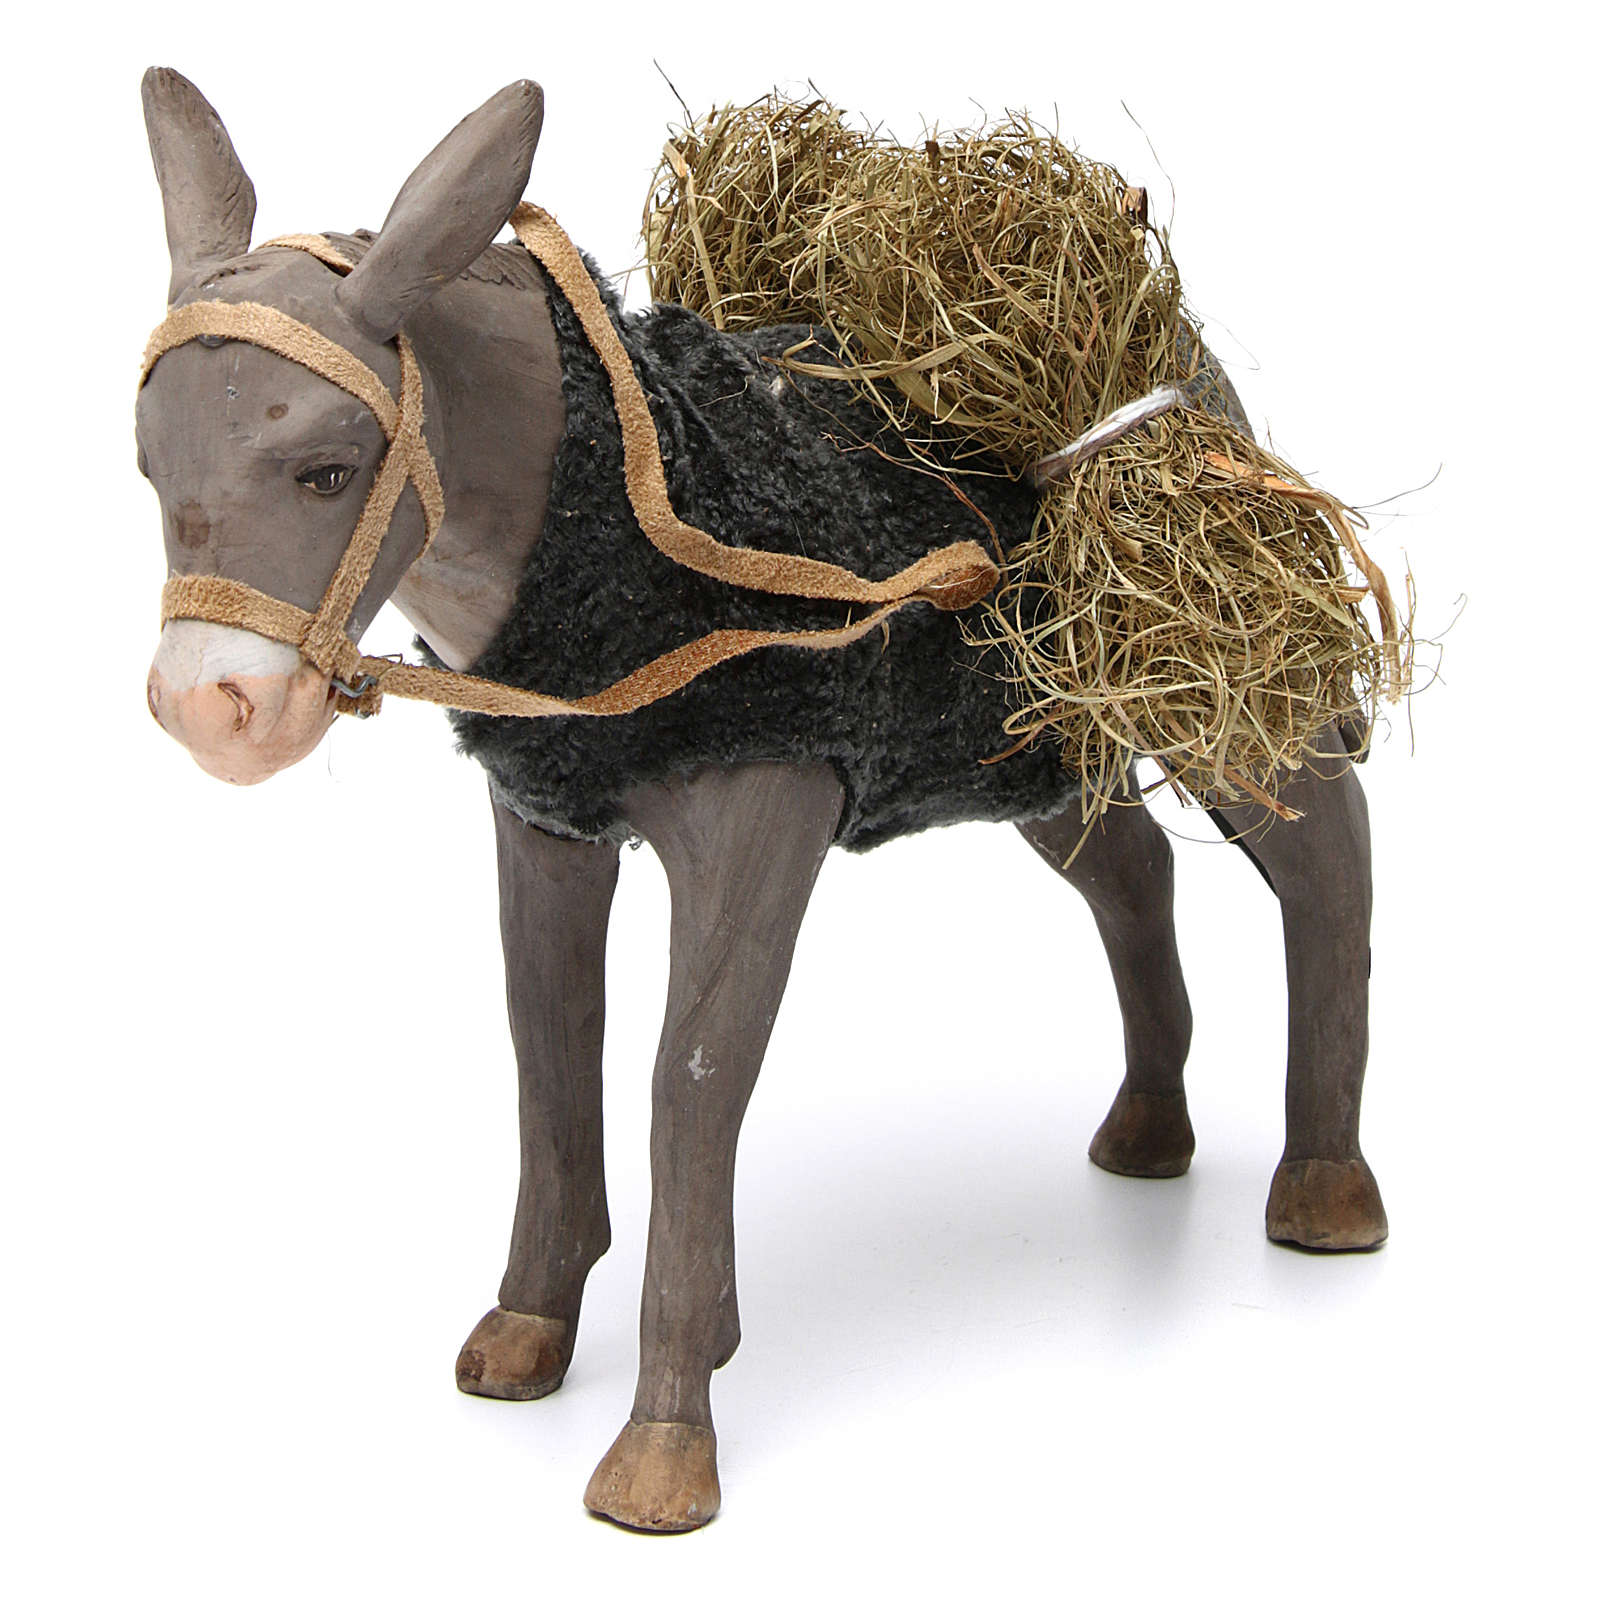 Animated Nativity Scene figurine, donkey 24 cm 4